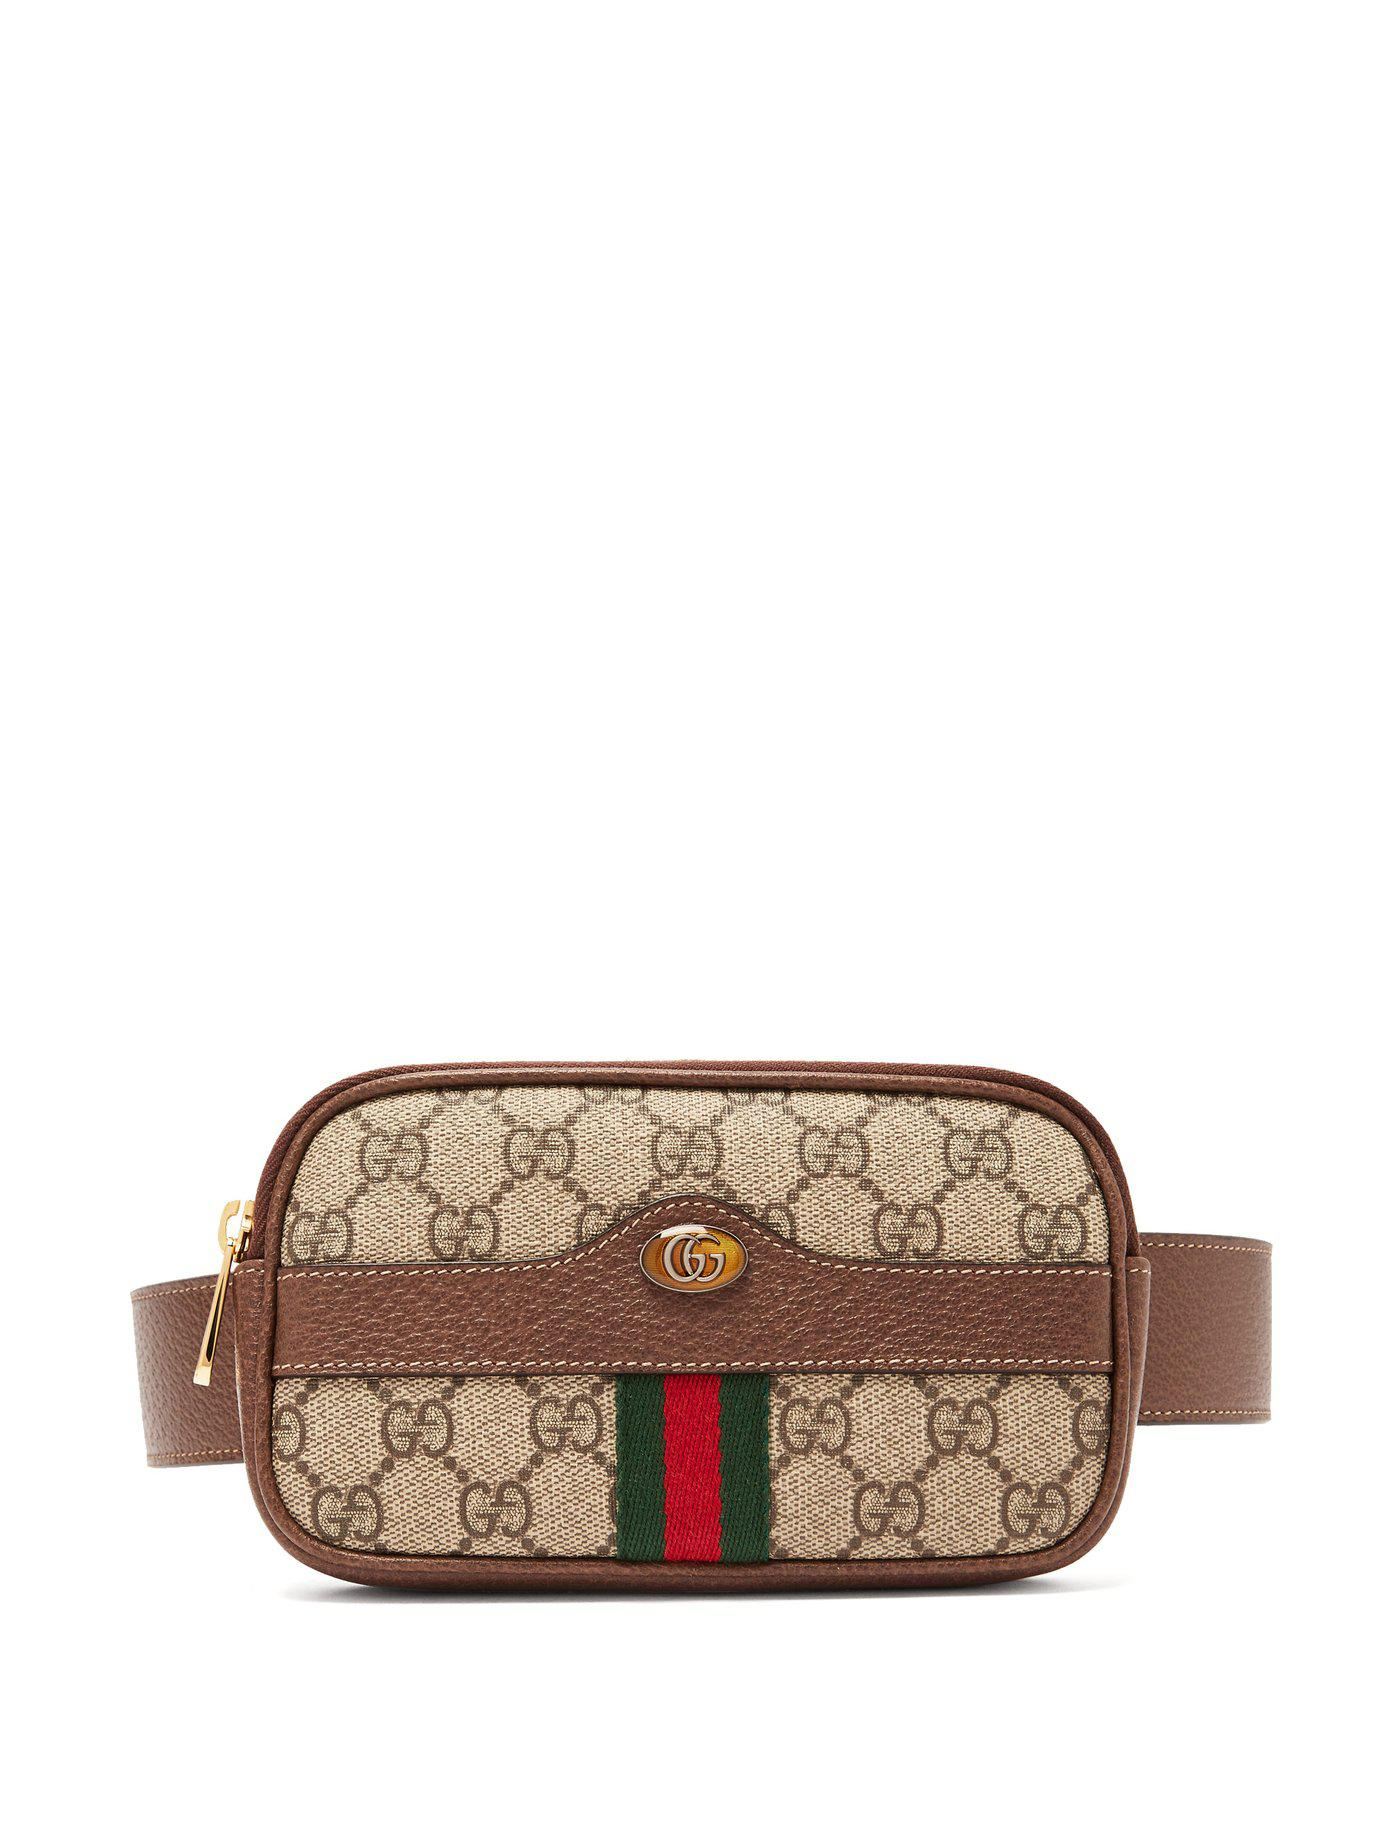 55232a73ed6e Gucci Ophidia Gg Supreme Iphone® Belt Bag in Brown - Lyst